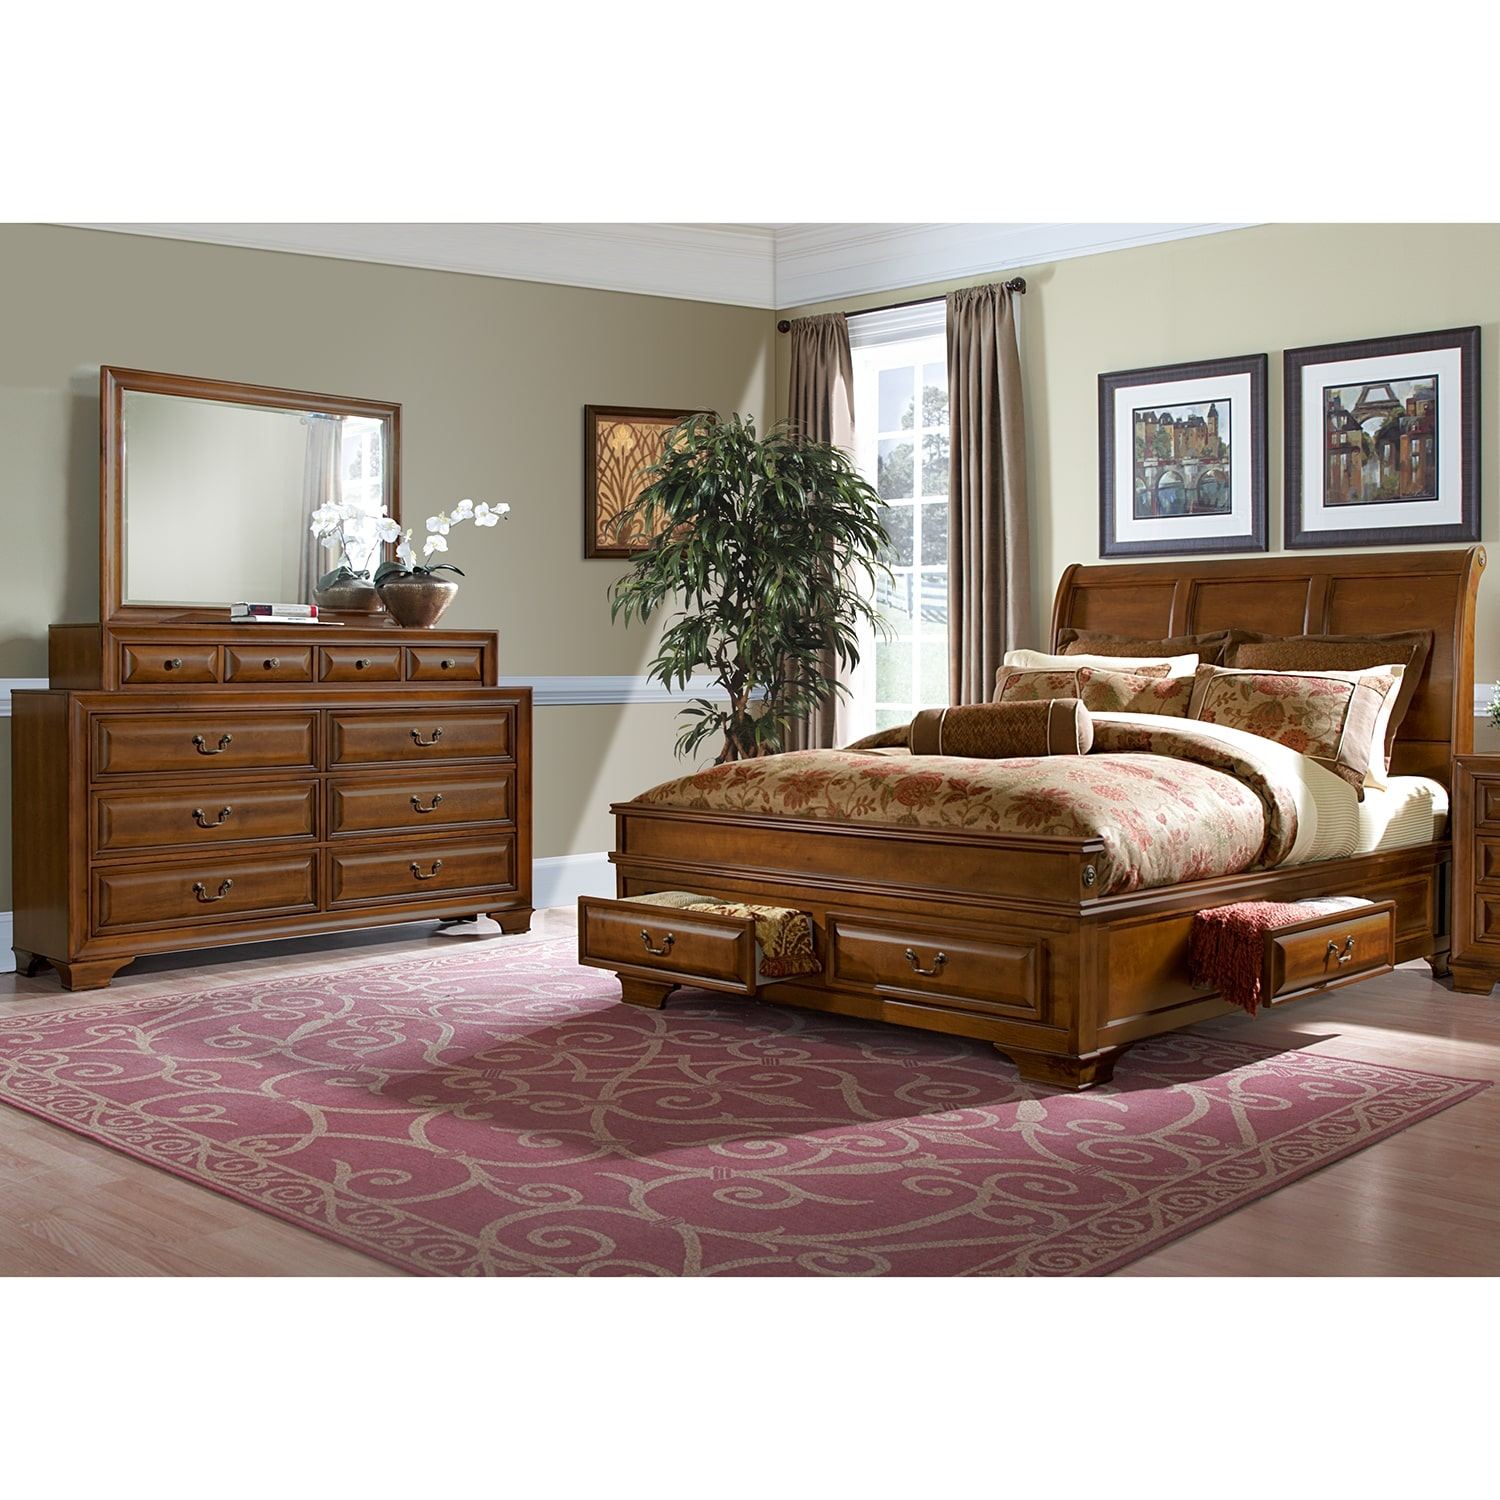 Sanibelle 5 Pc. Queen Storage Bedroom by Factory Outlet